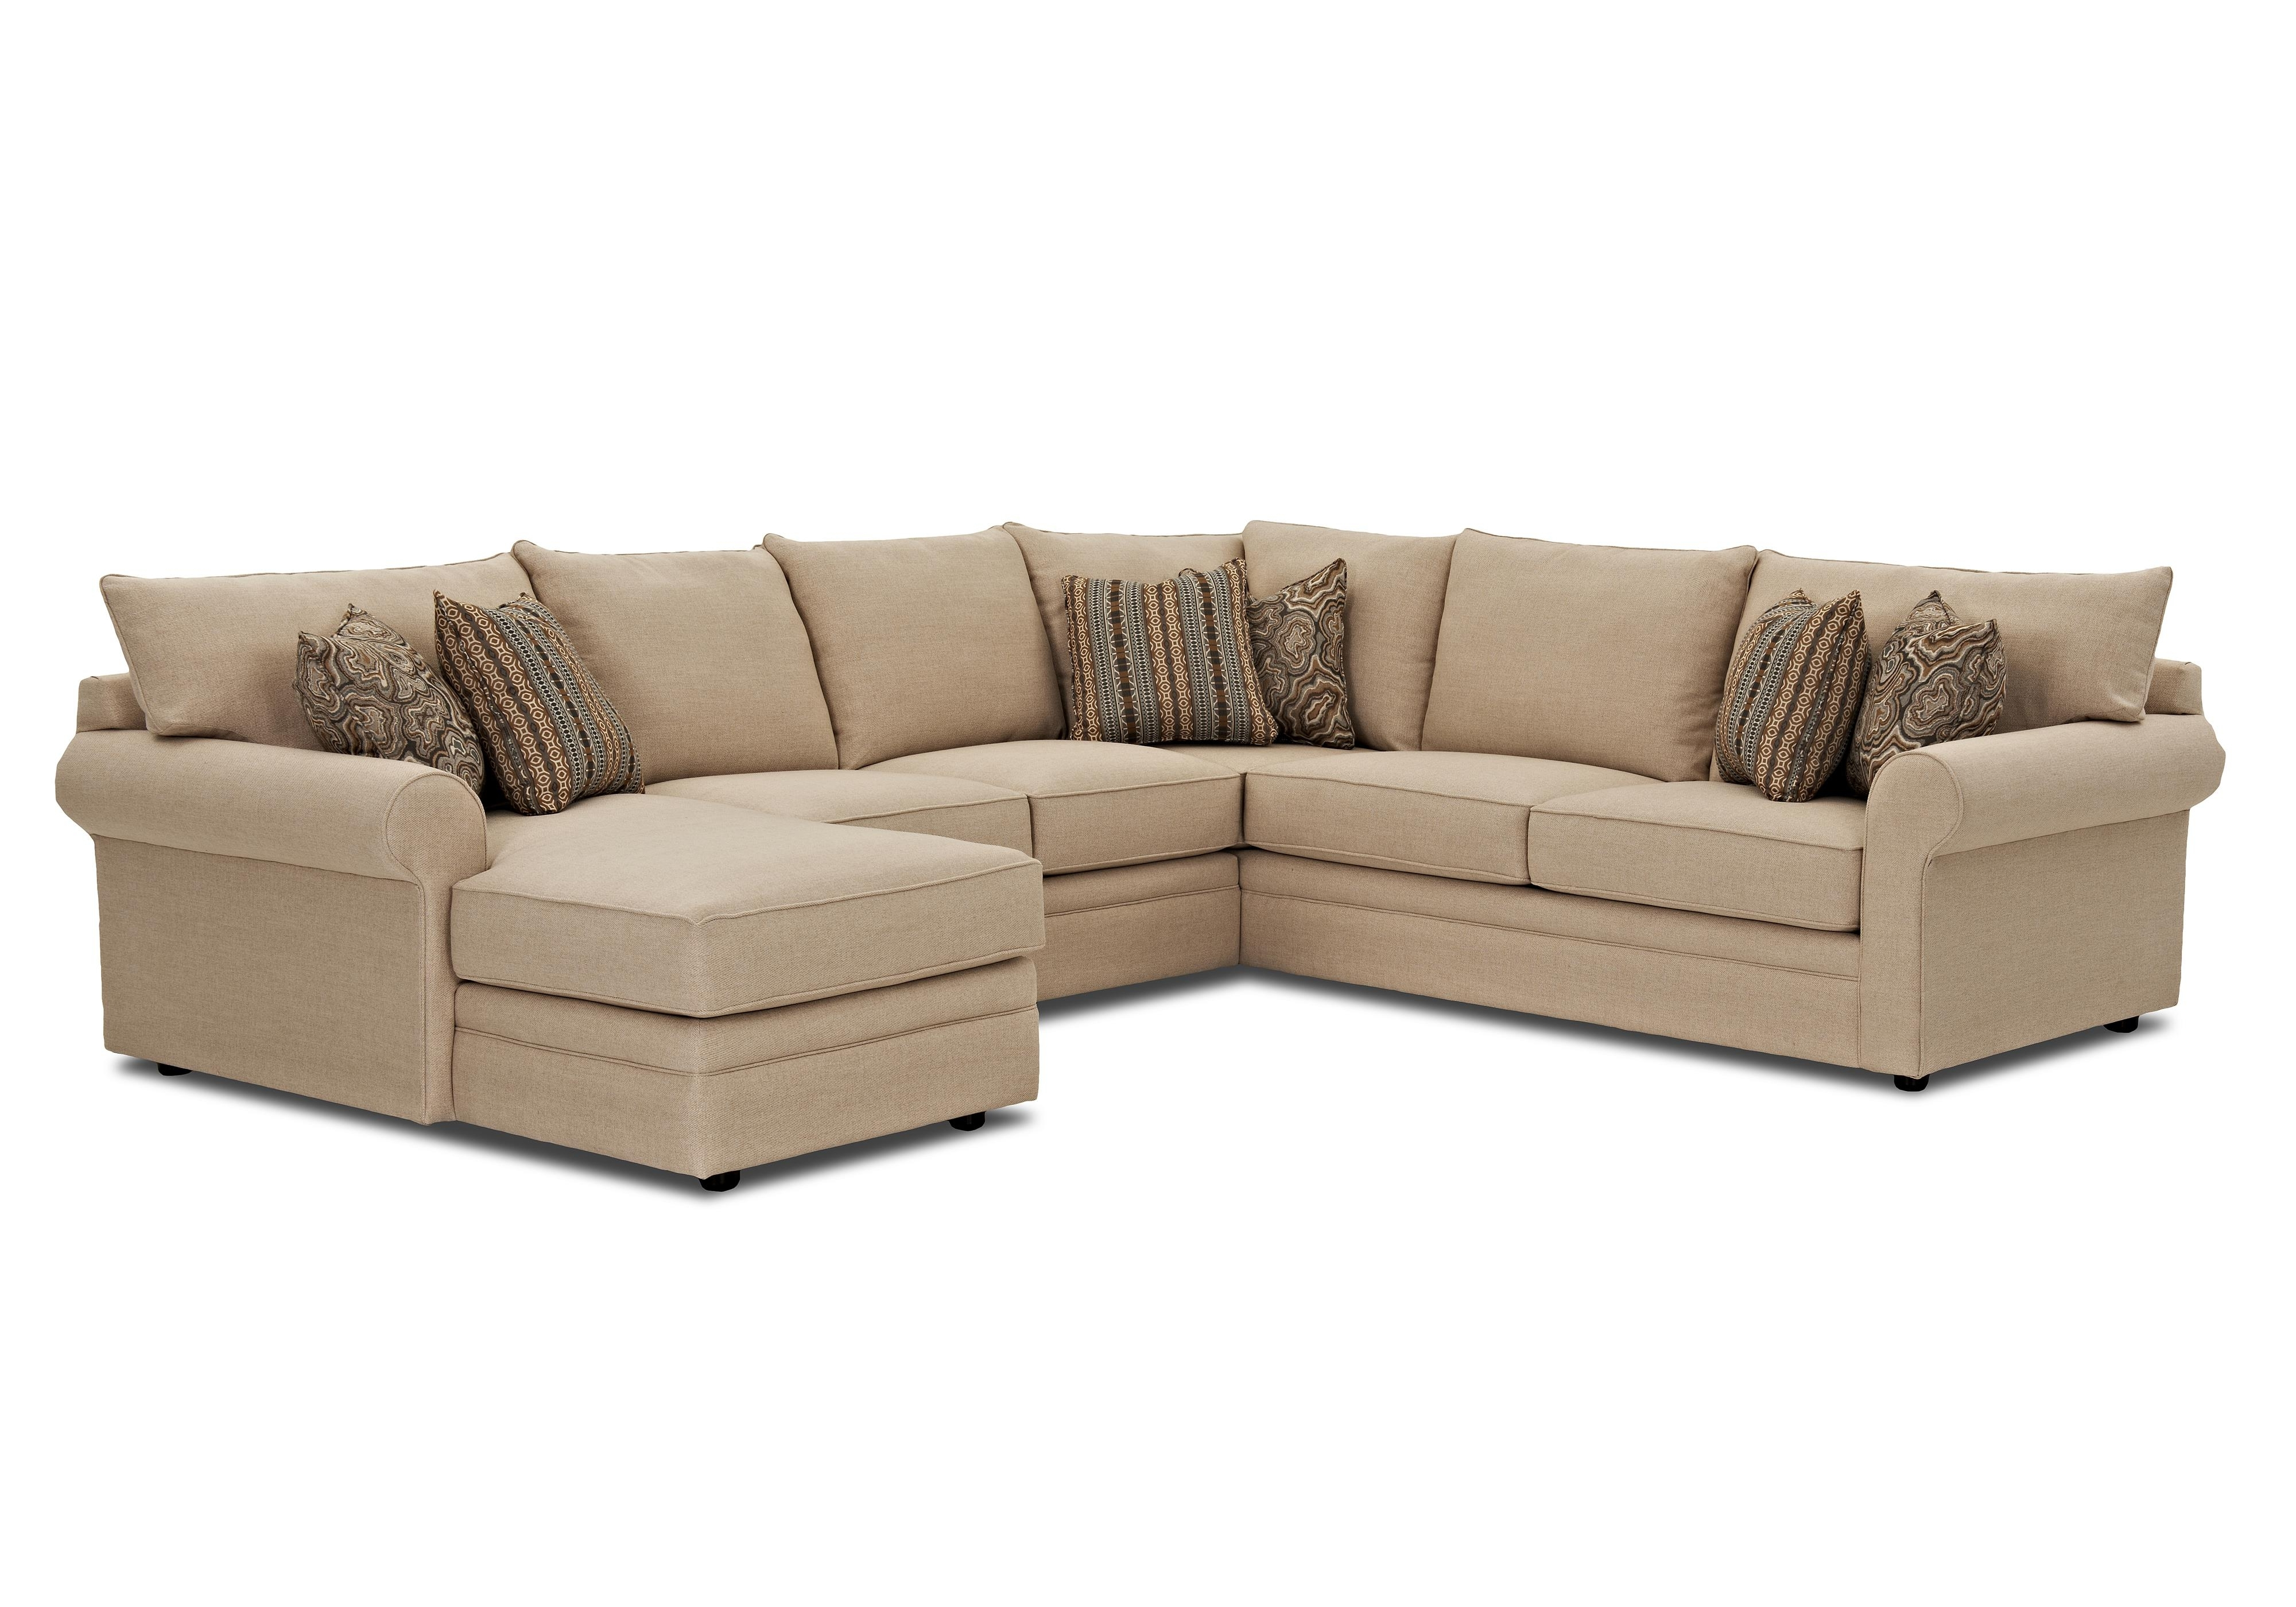 Comfy Sectional Sofas Regarding Famous Klaussner Comfy Casual Sectional Sofa With Raf Chaise (View 3 of 15)